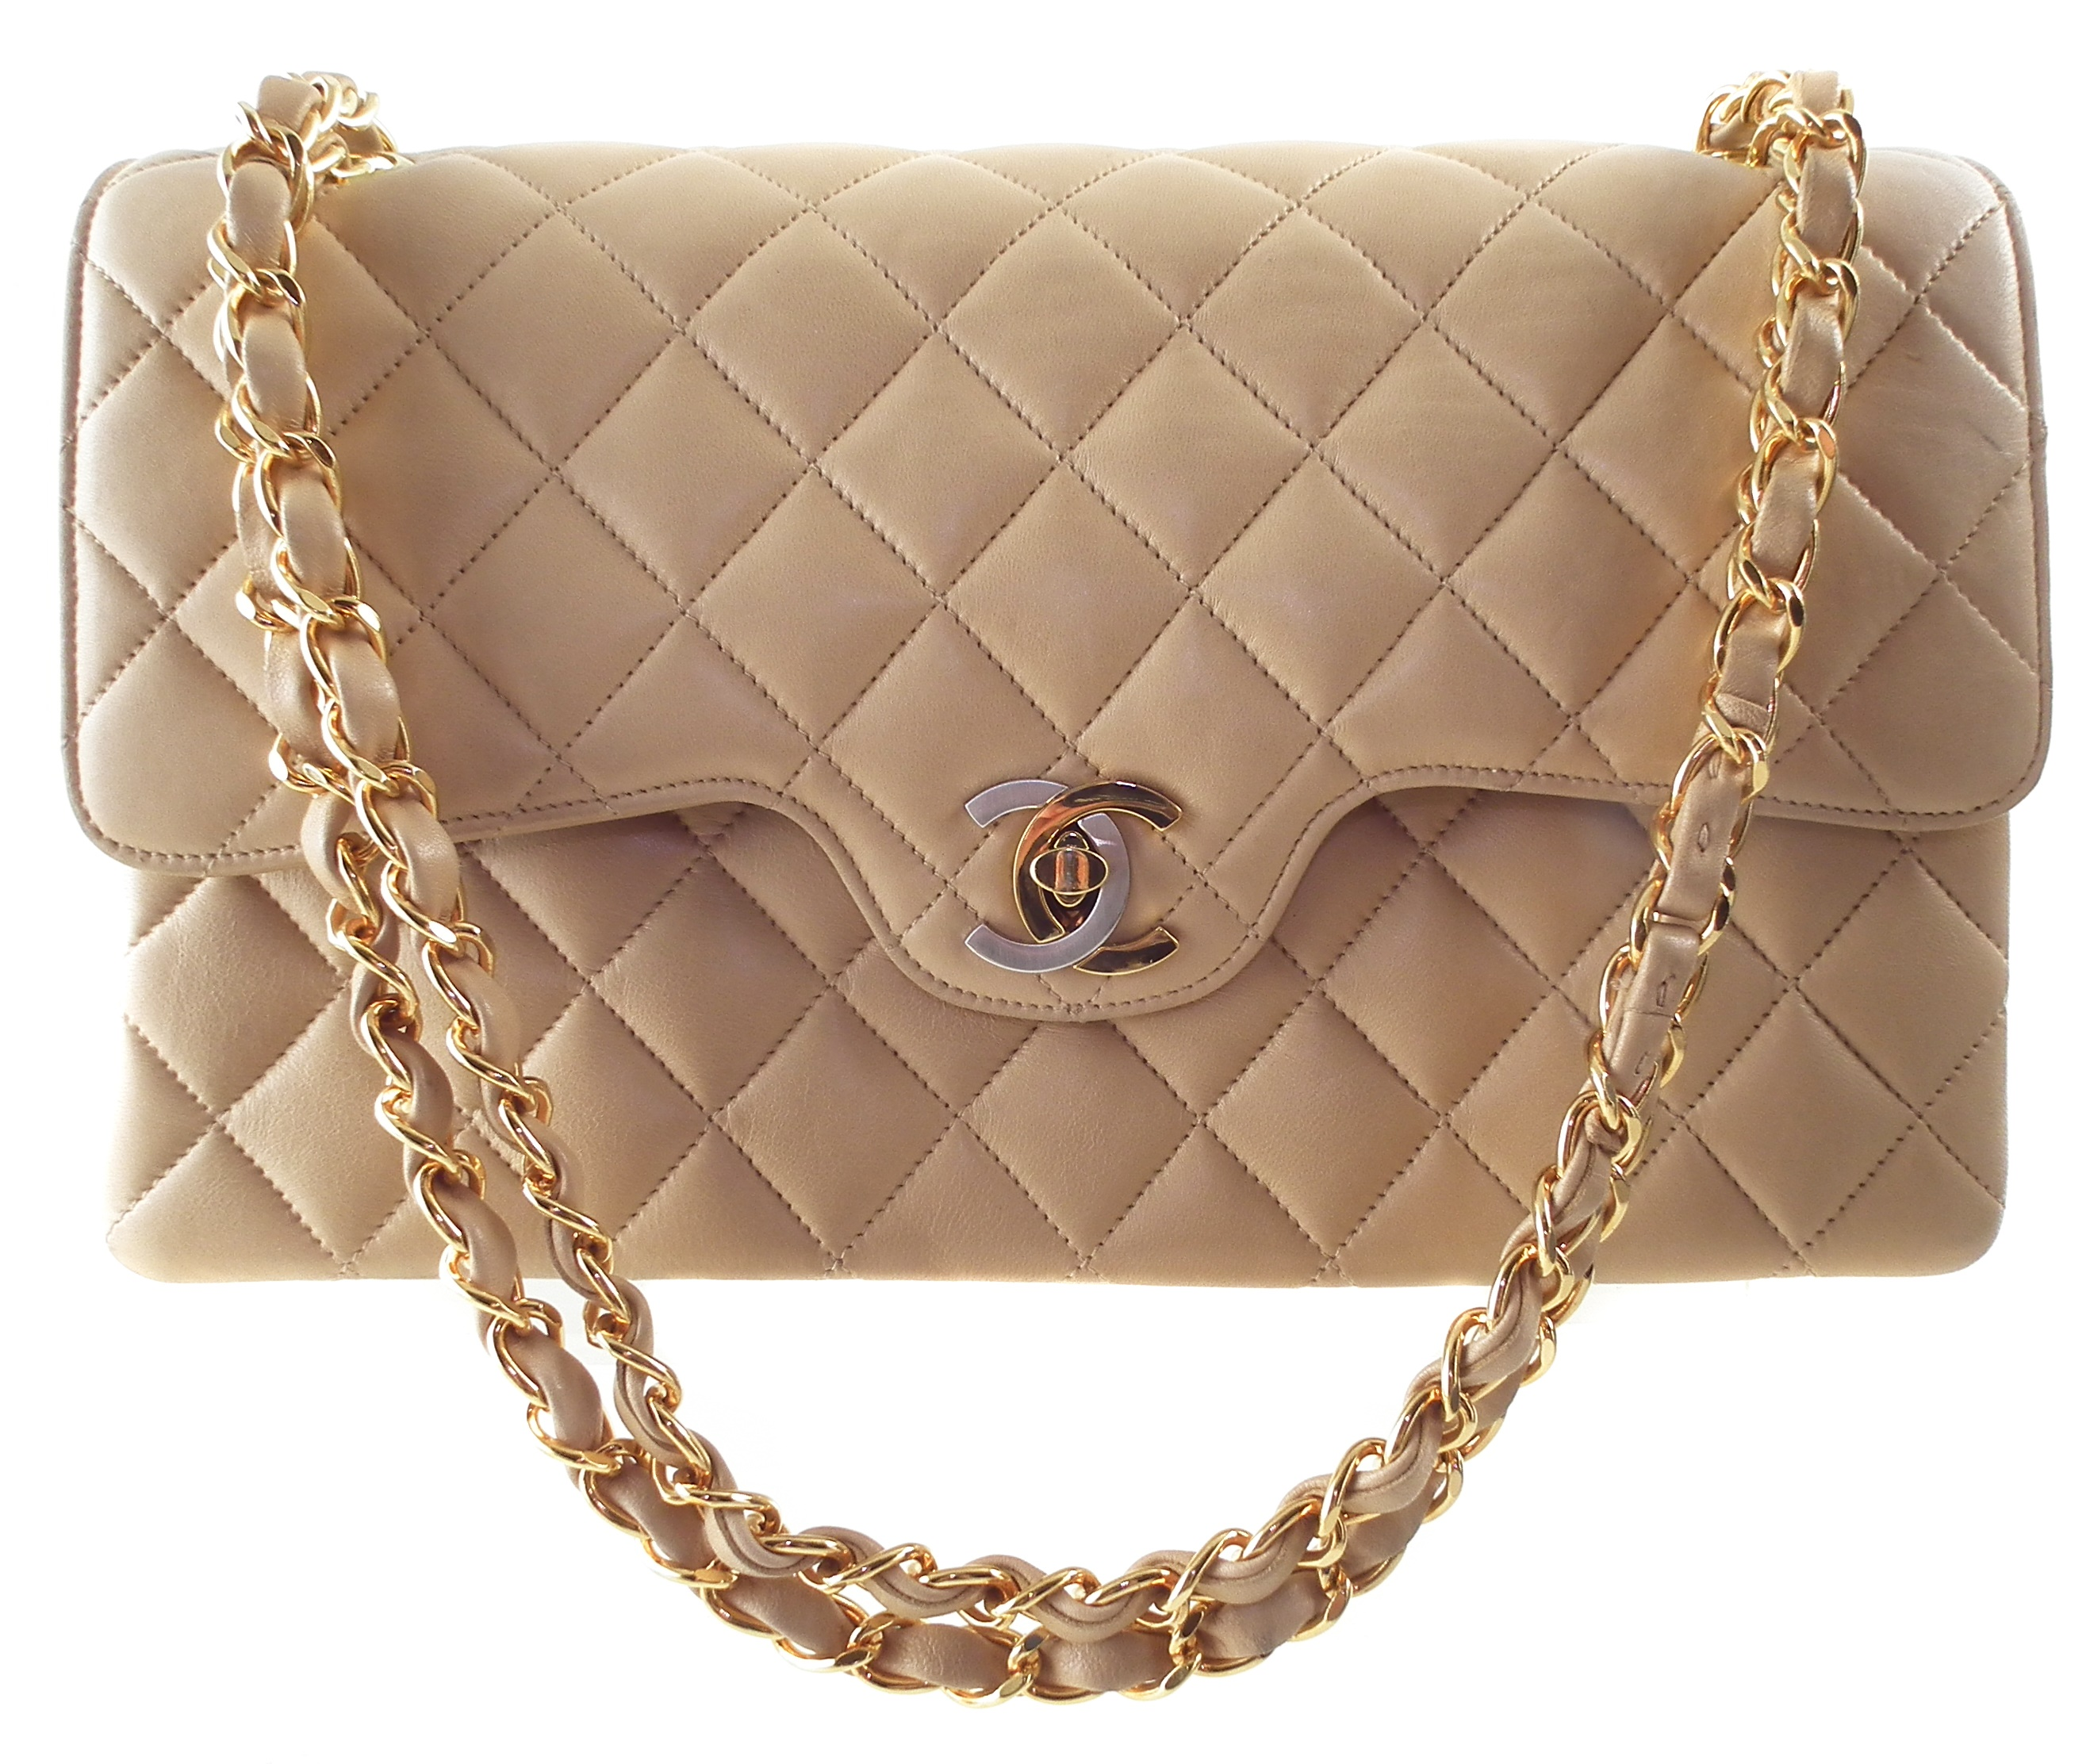 A rare Chanel medium double flap handbag, circa 1991-4, the beige quilted lambskin leather exterior with gold and silver-tone locking clasp, gold-tone double chain shoulder strap, serial number 2827451. Dimensions 26 x 16 x 7cm. With maker's authenticity card.